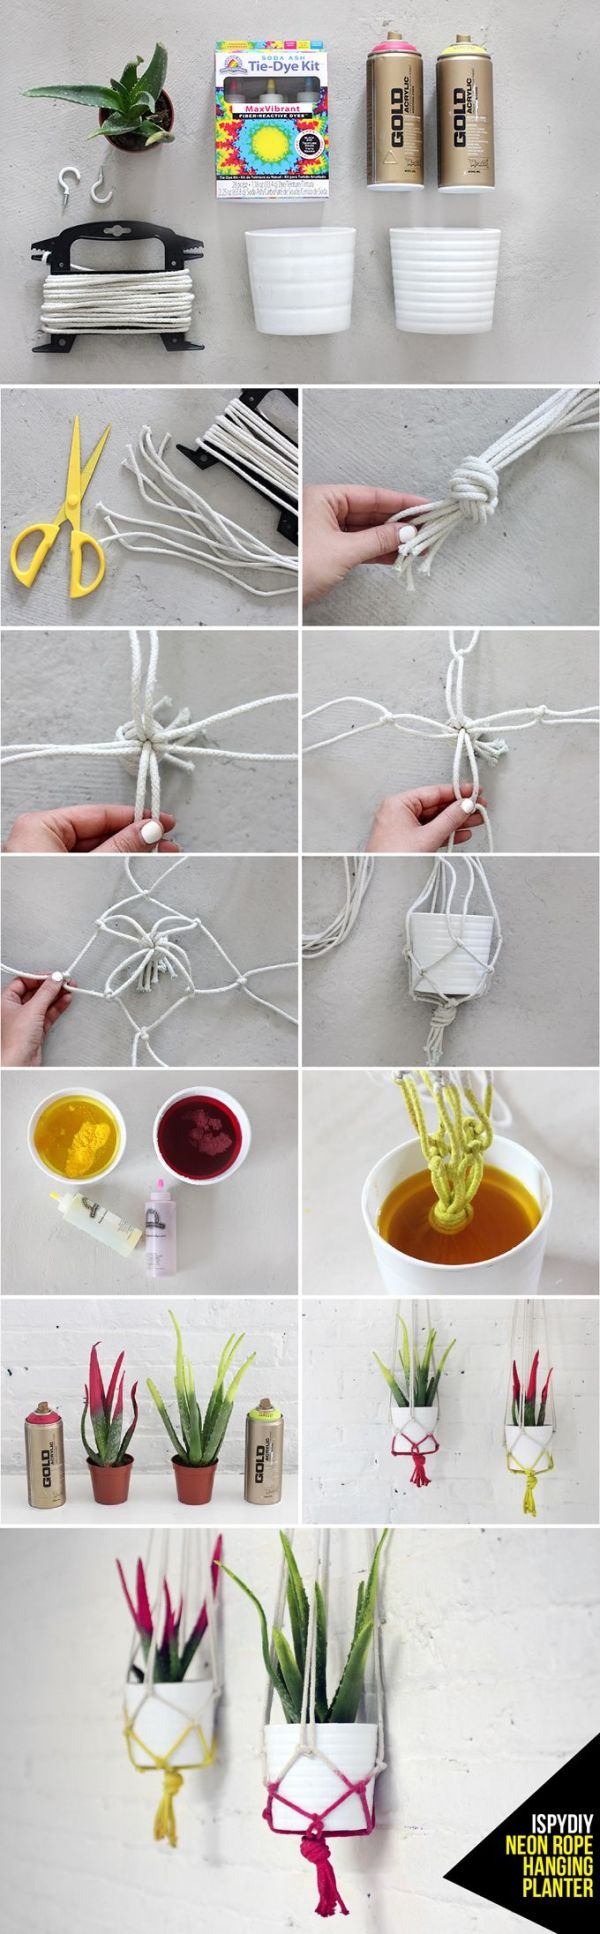 DIY rope hanging planter